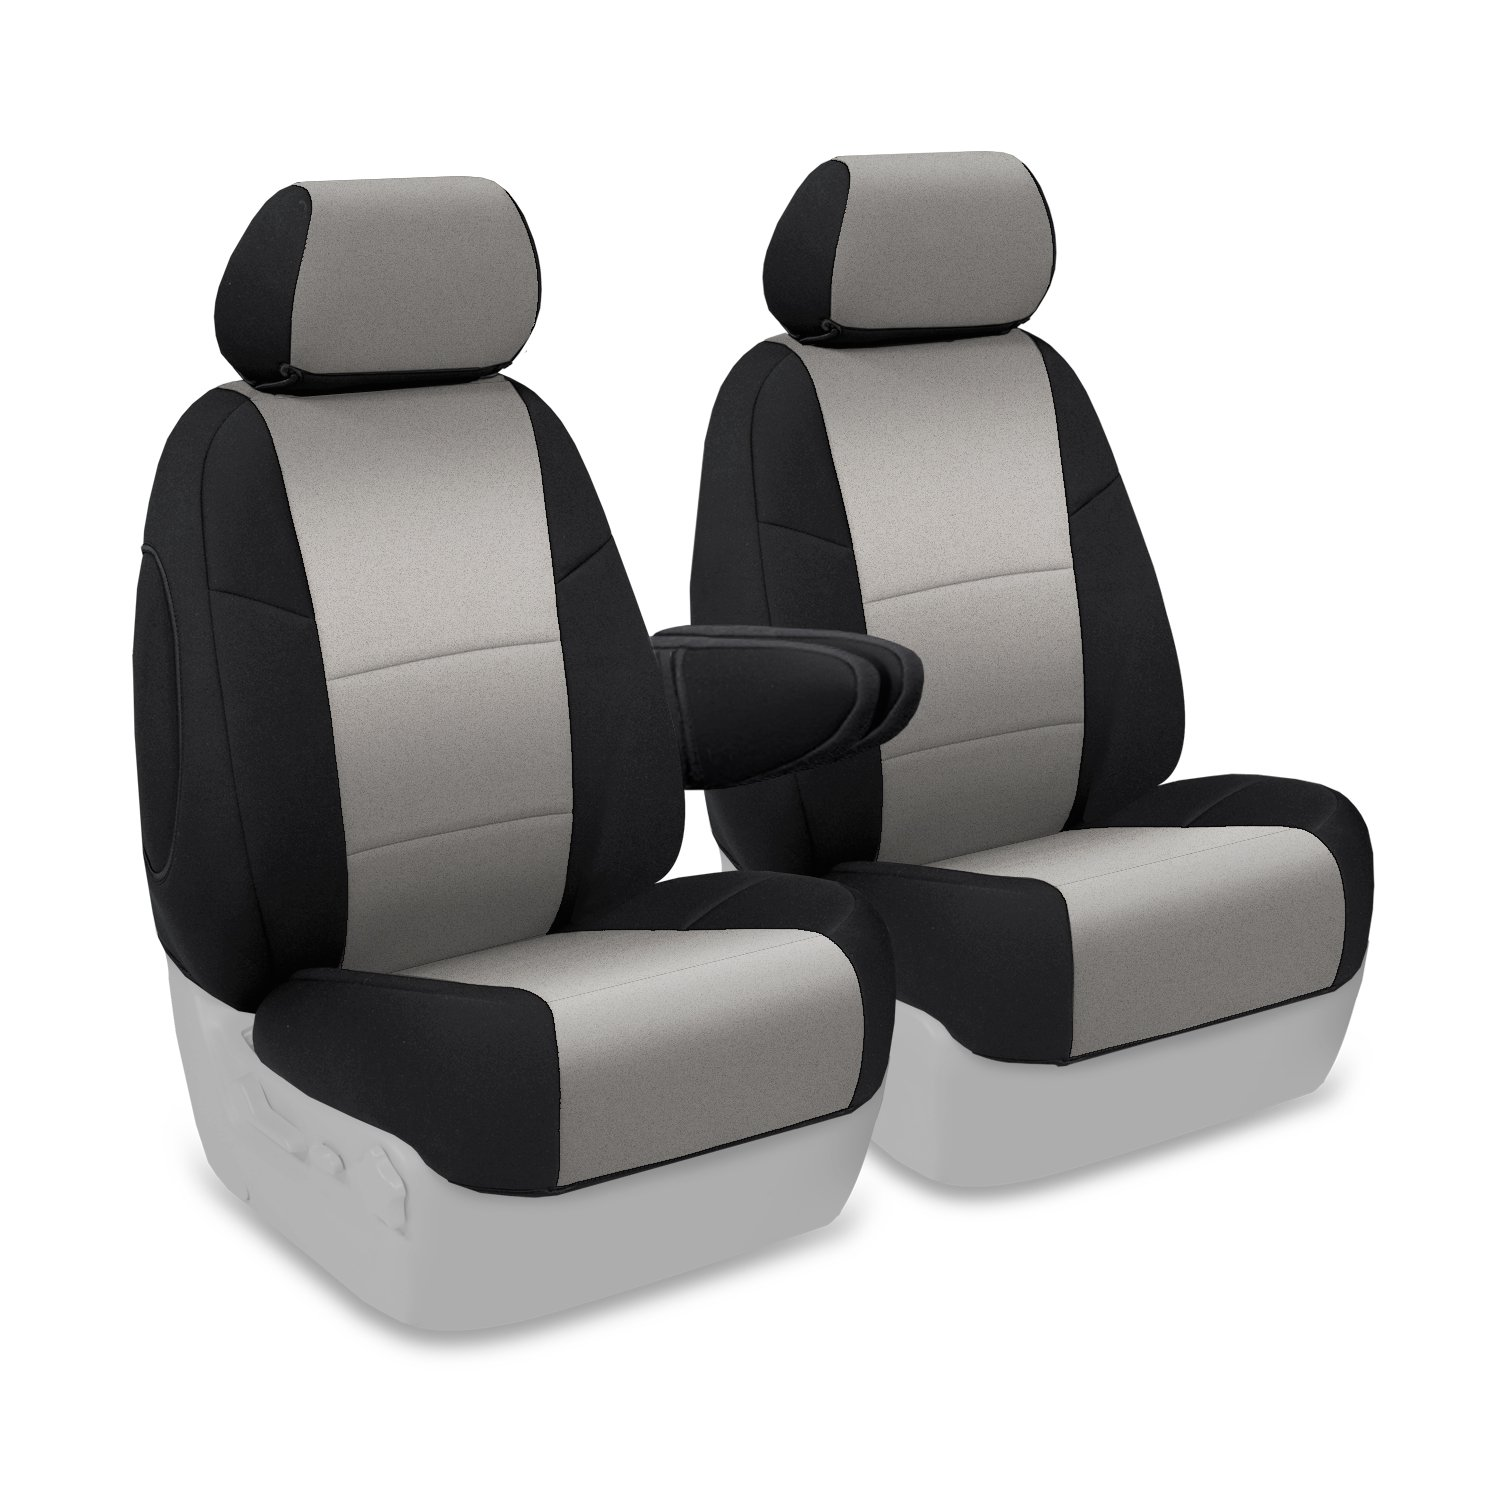 2009 chevy hhr seat covers